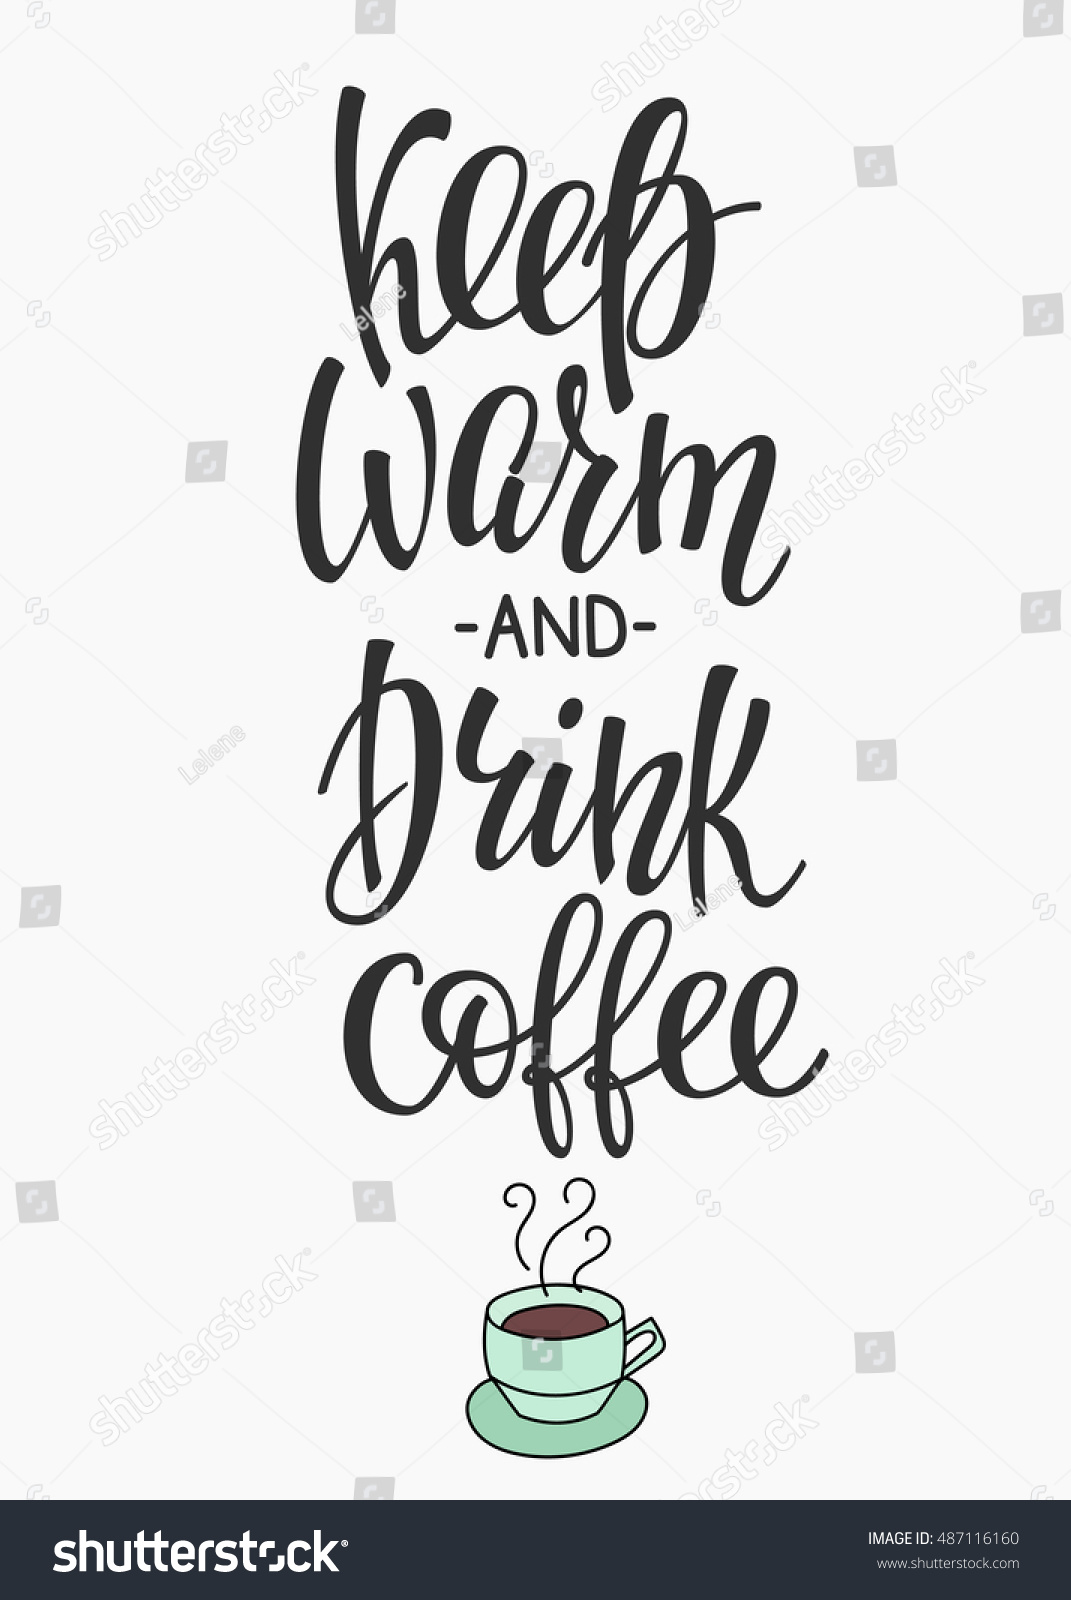 Quote coffee cup typography calligraphy style stock vector Calligraphy and sign